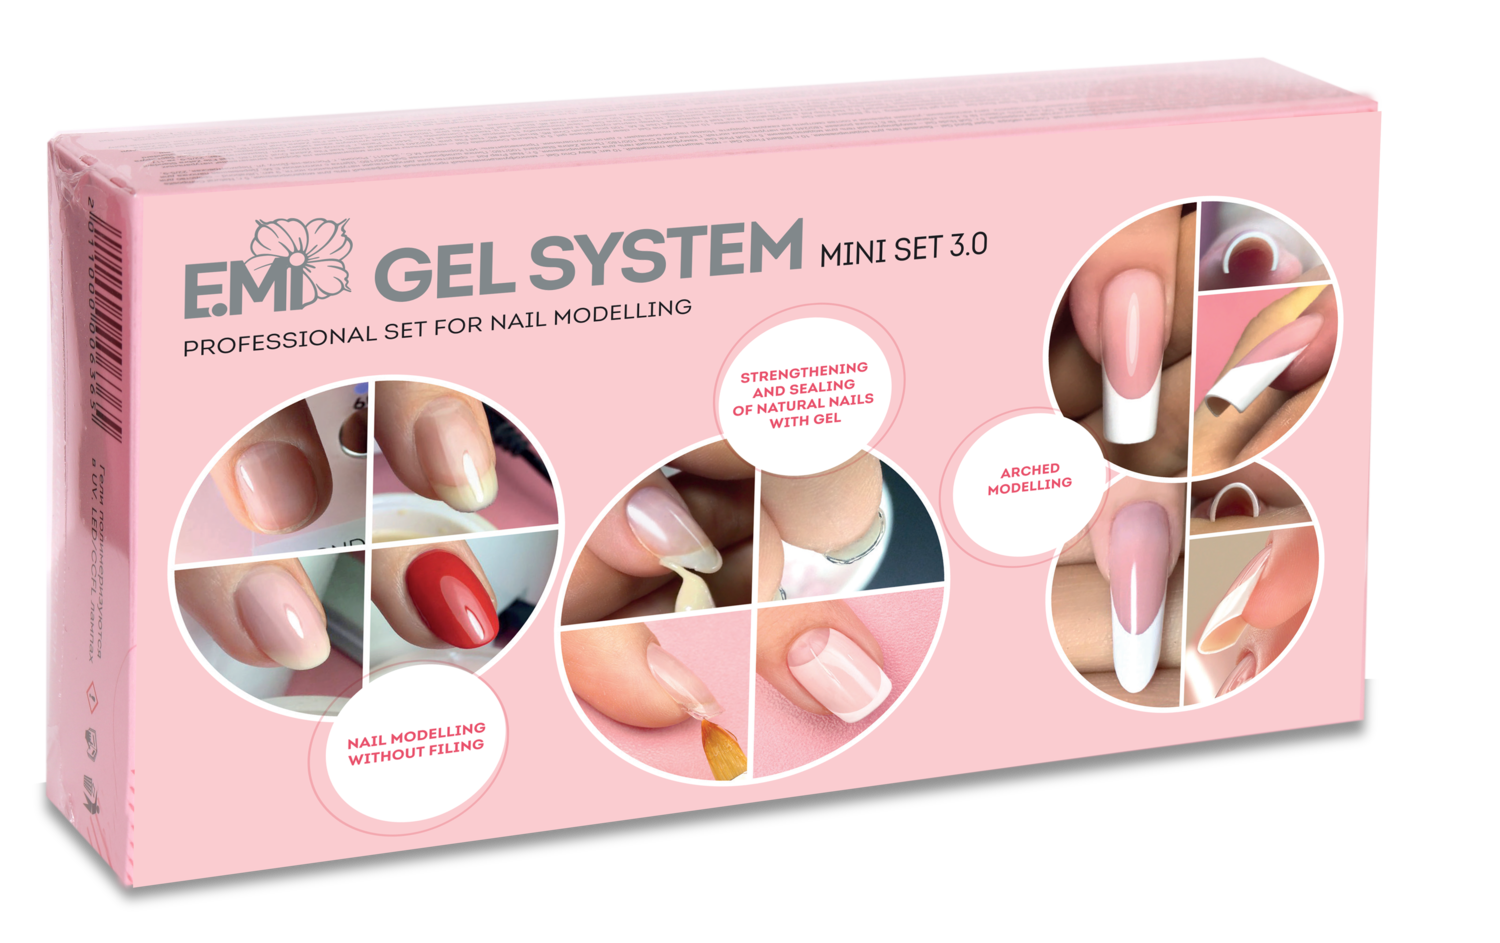 E.Mi Gel System Mini Set 3.0